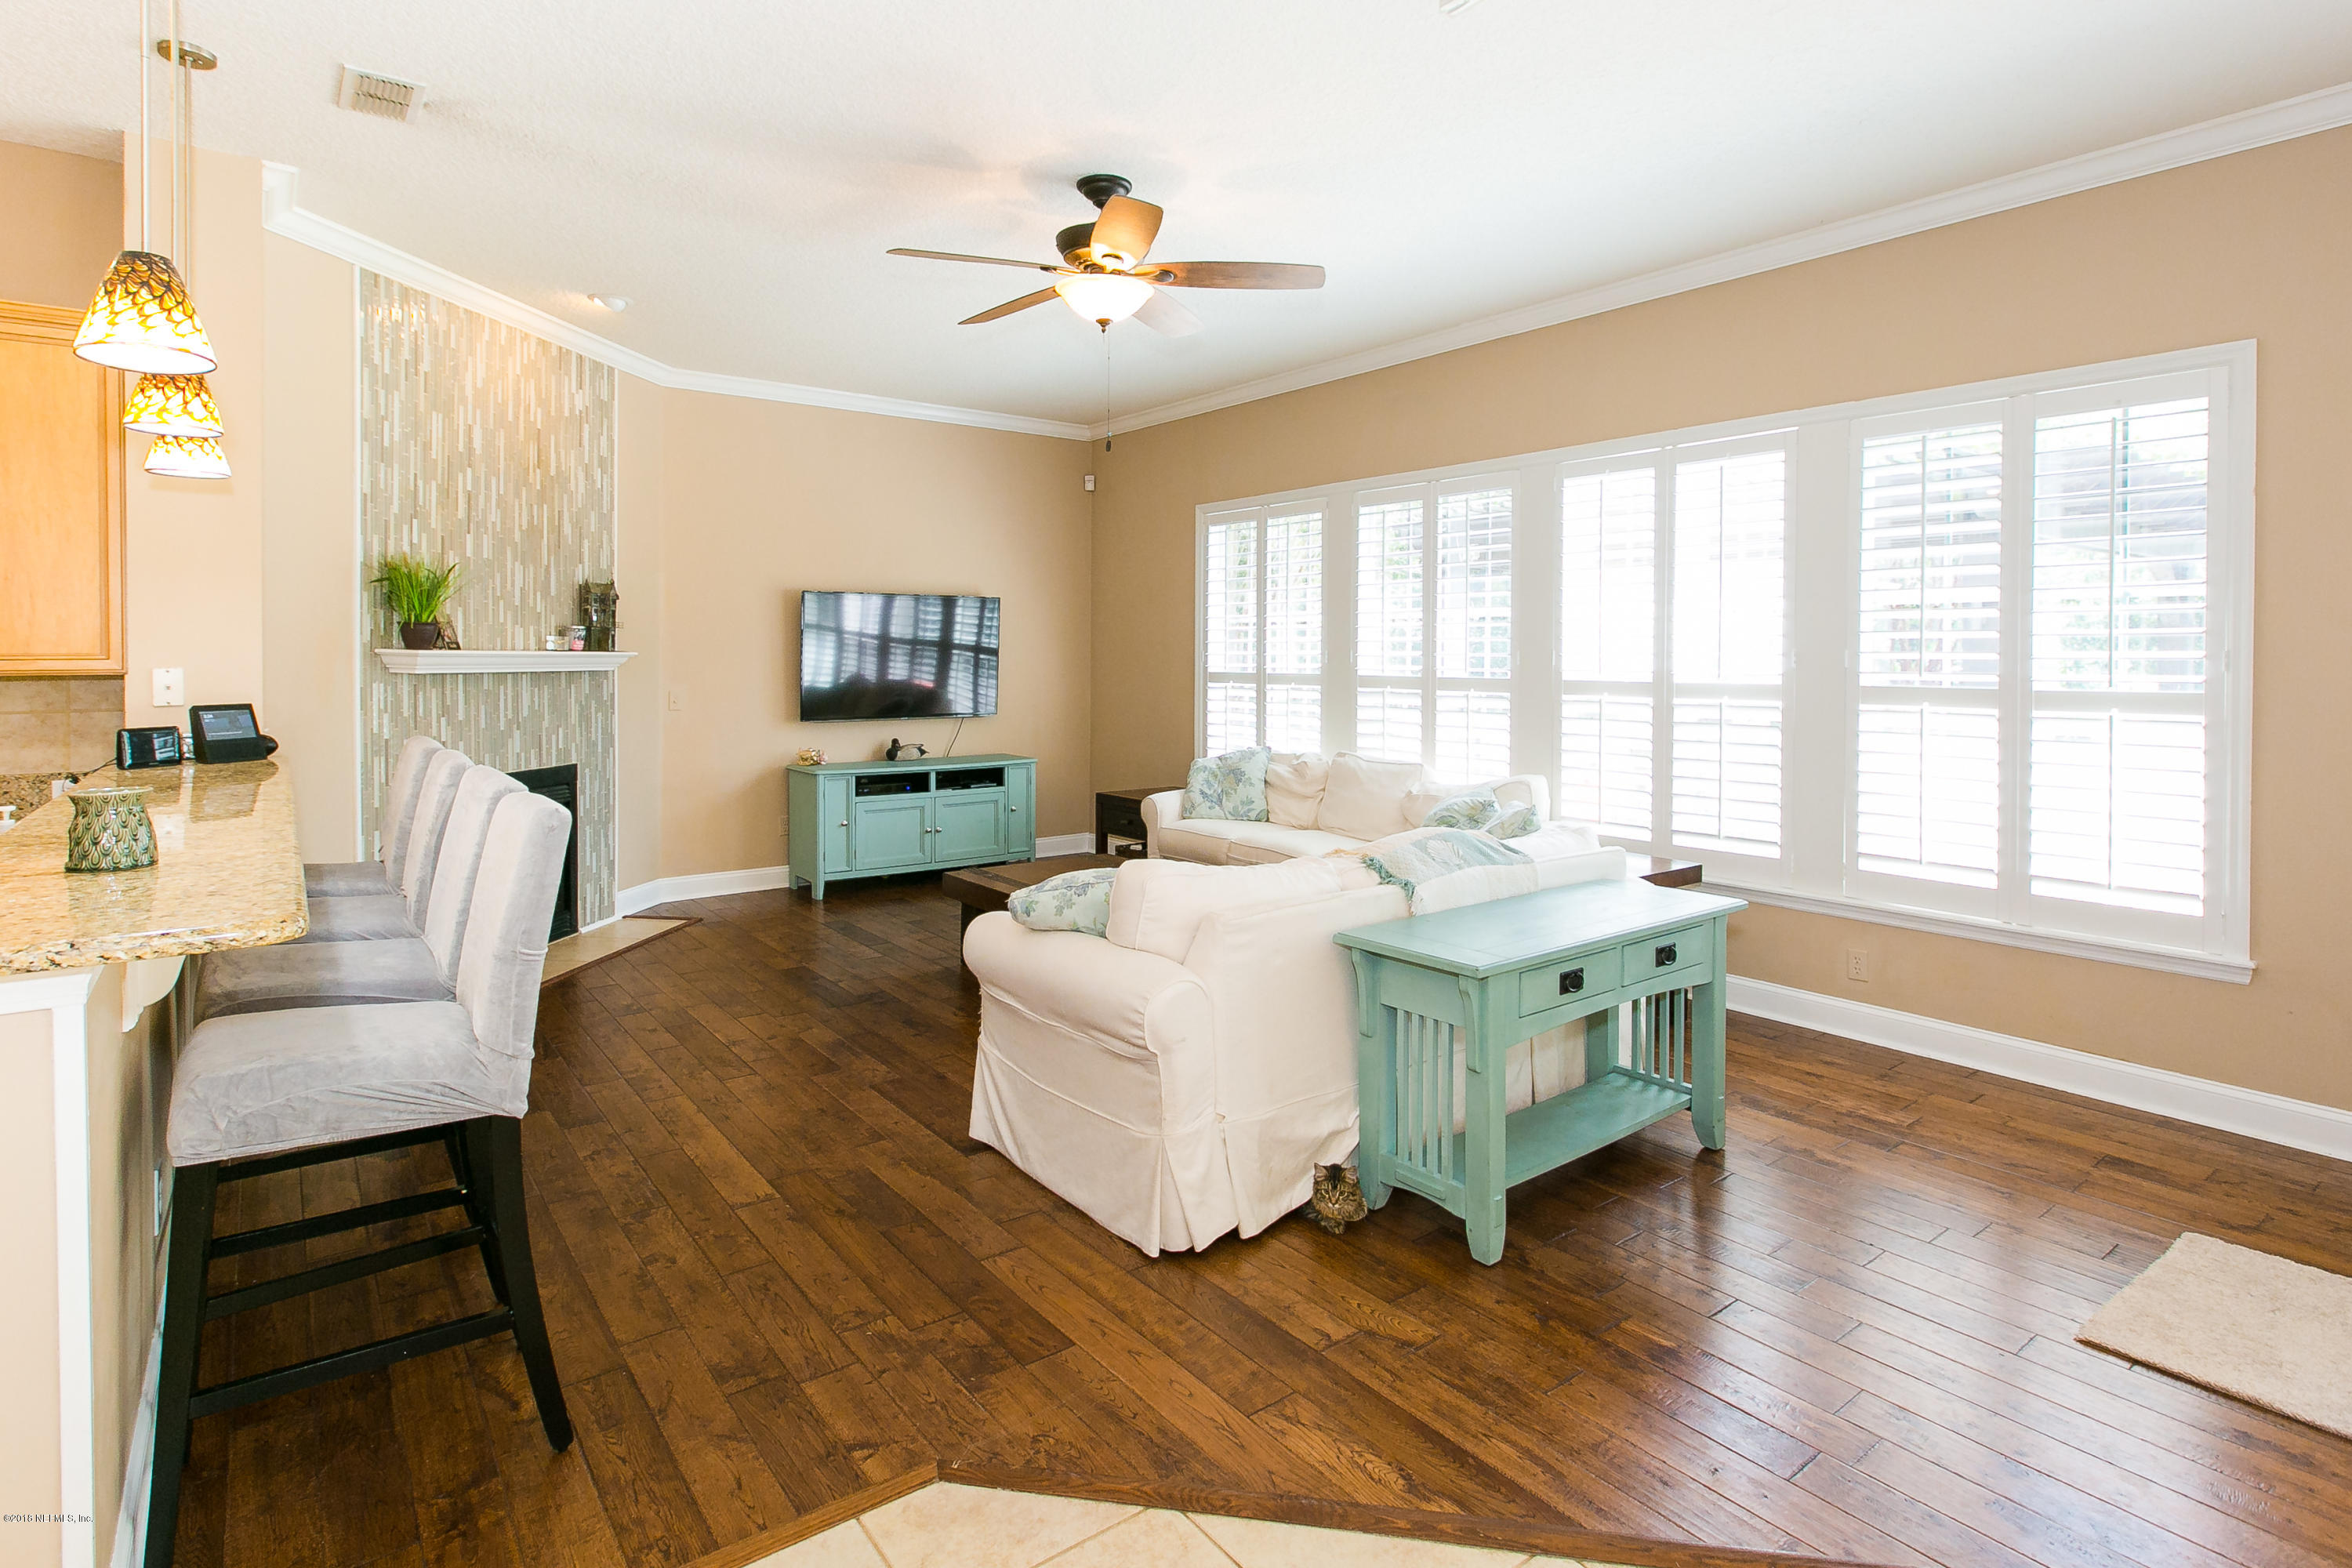 769 EAGLE POINT, ST AUGUSTINE, FLORIDA 32092, 4 Bedrooms Bedrooms, ,2 BathroomsBathrooms,Residential - single family,For sale,EAGLE POINT,960562